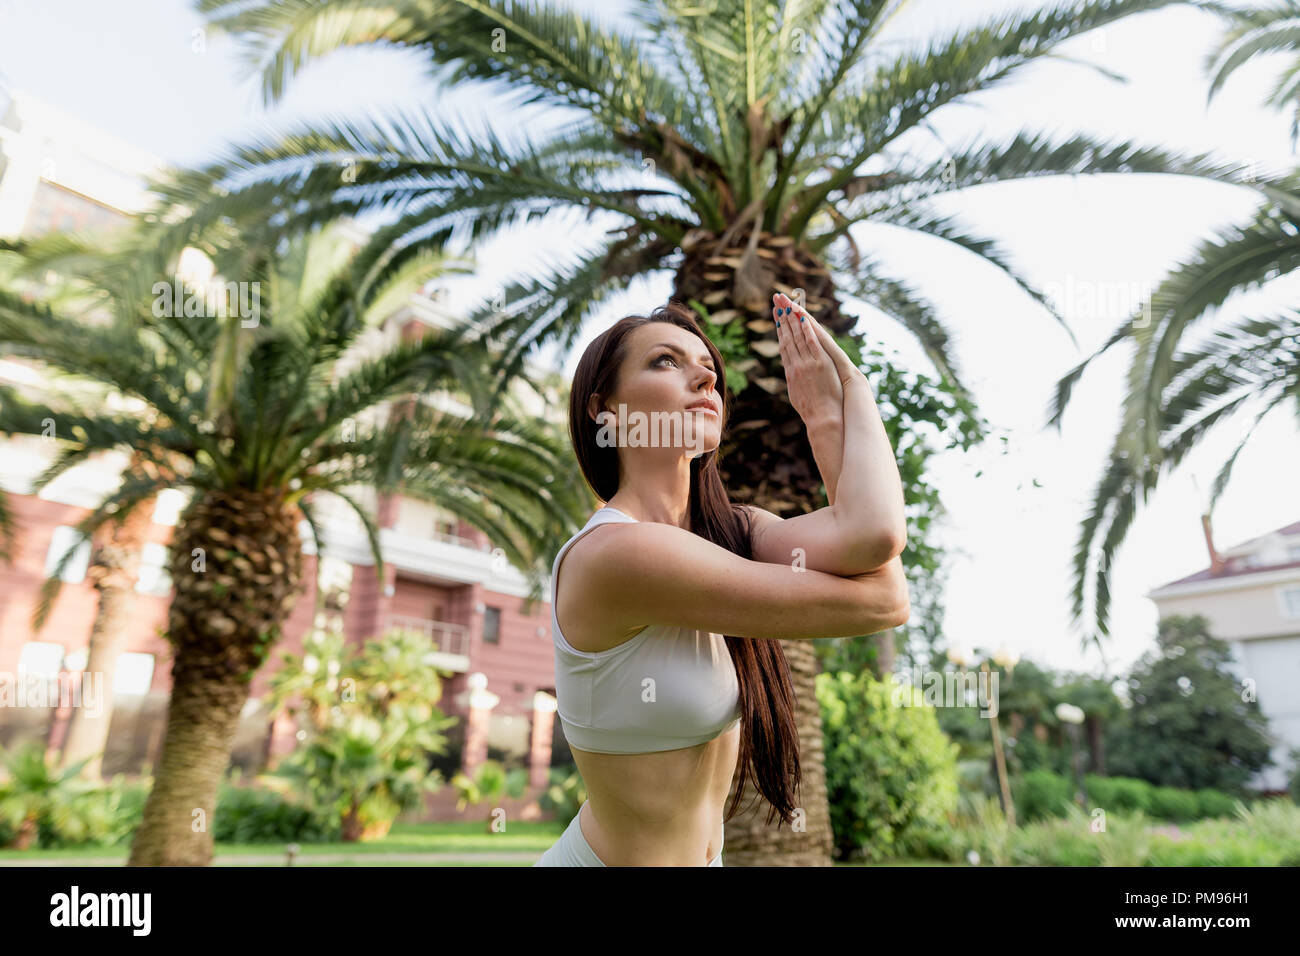 Young woman doing Yoga outdoors in park in white sportswear. Active vacation. - Stock Image